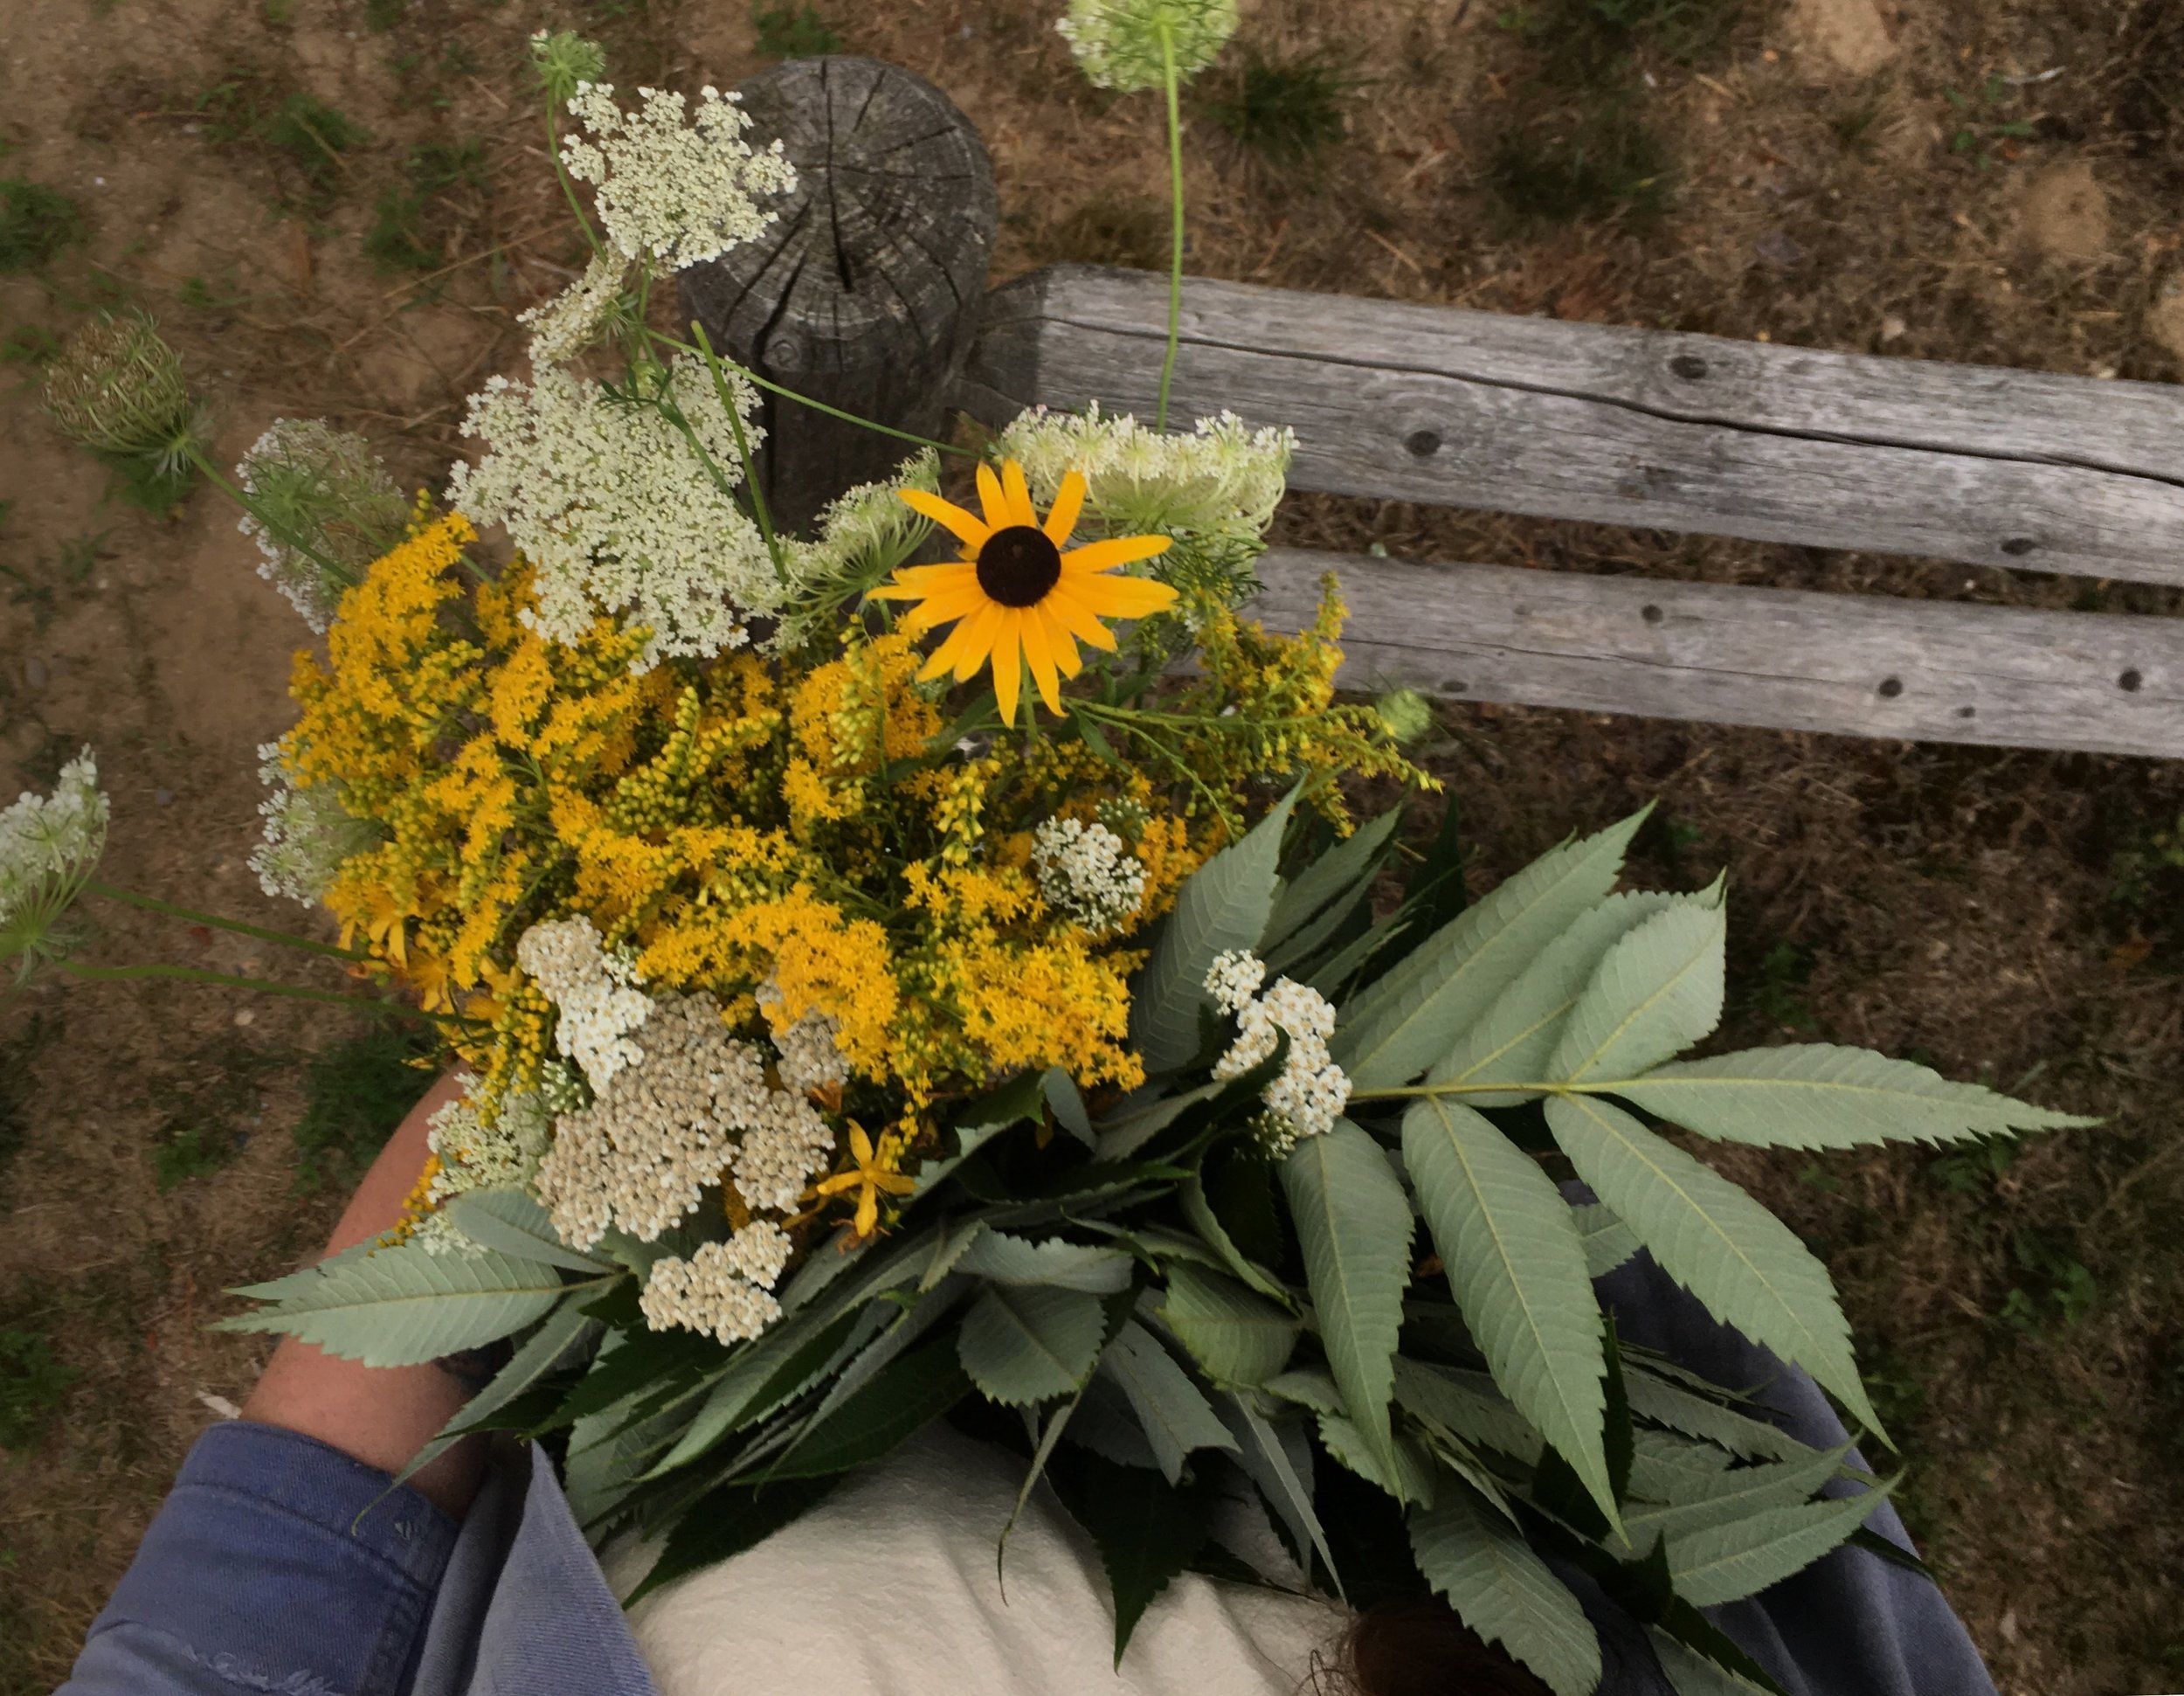 Gathered wildflowers for eco printing